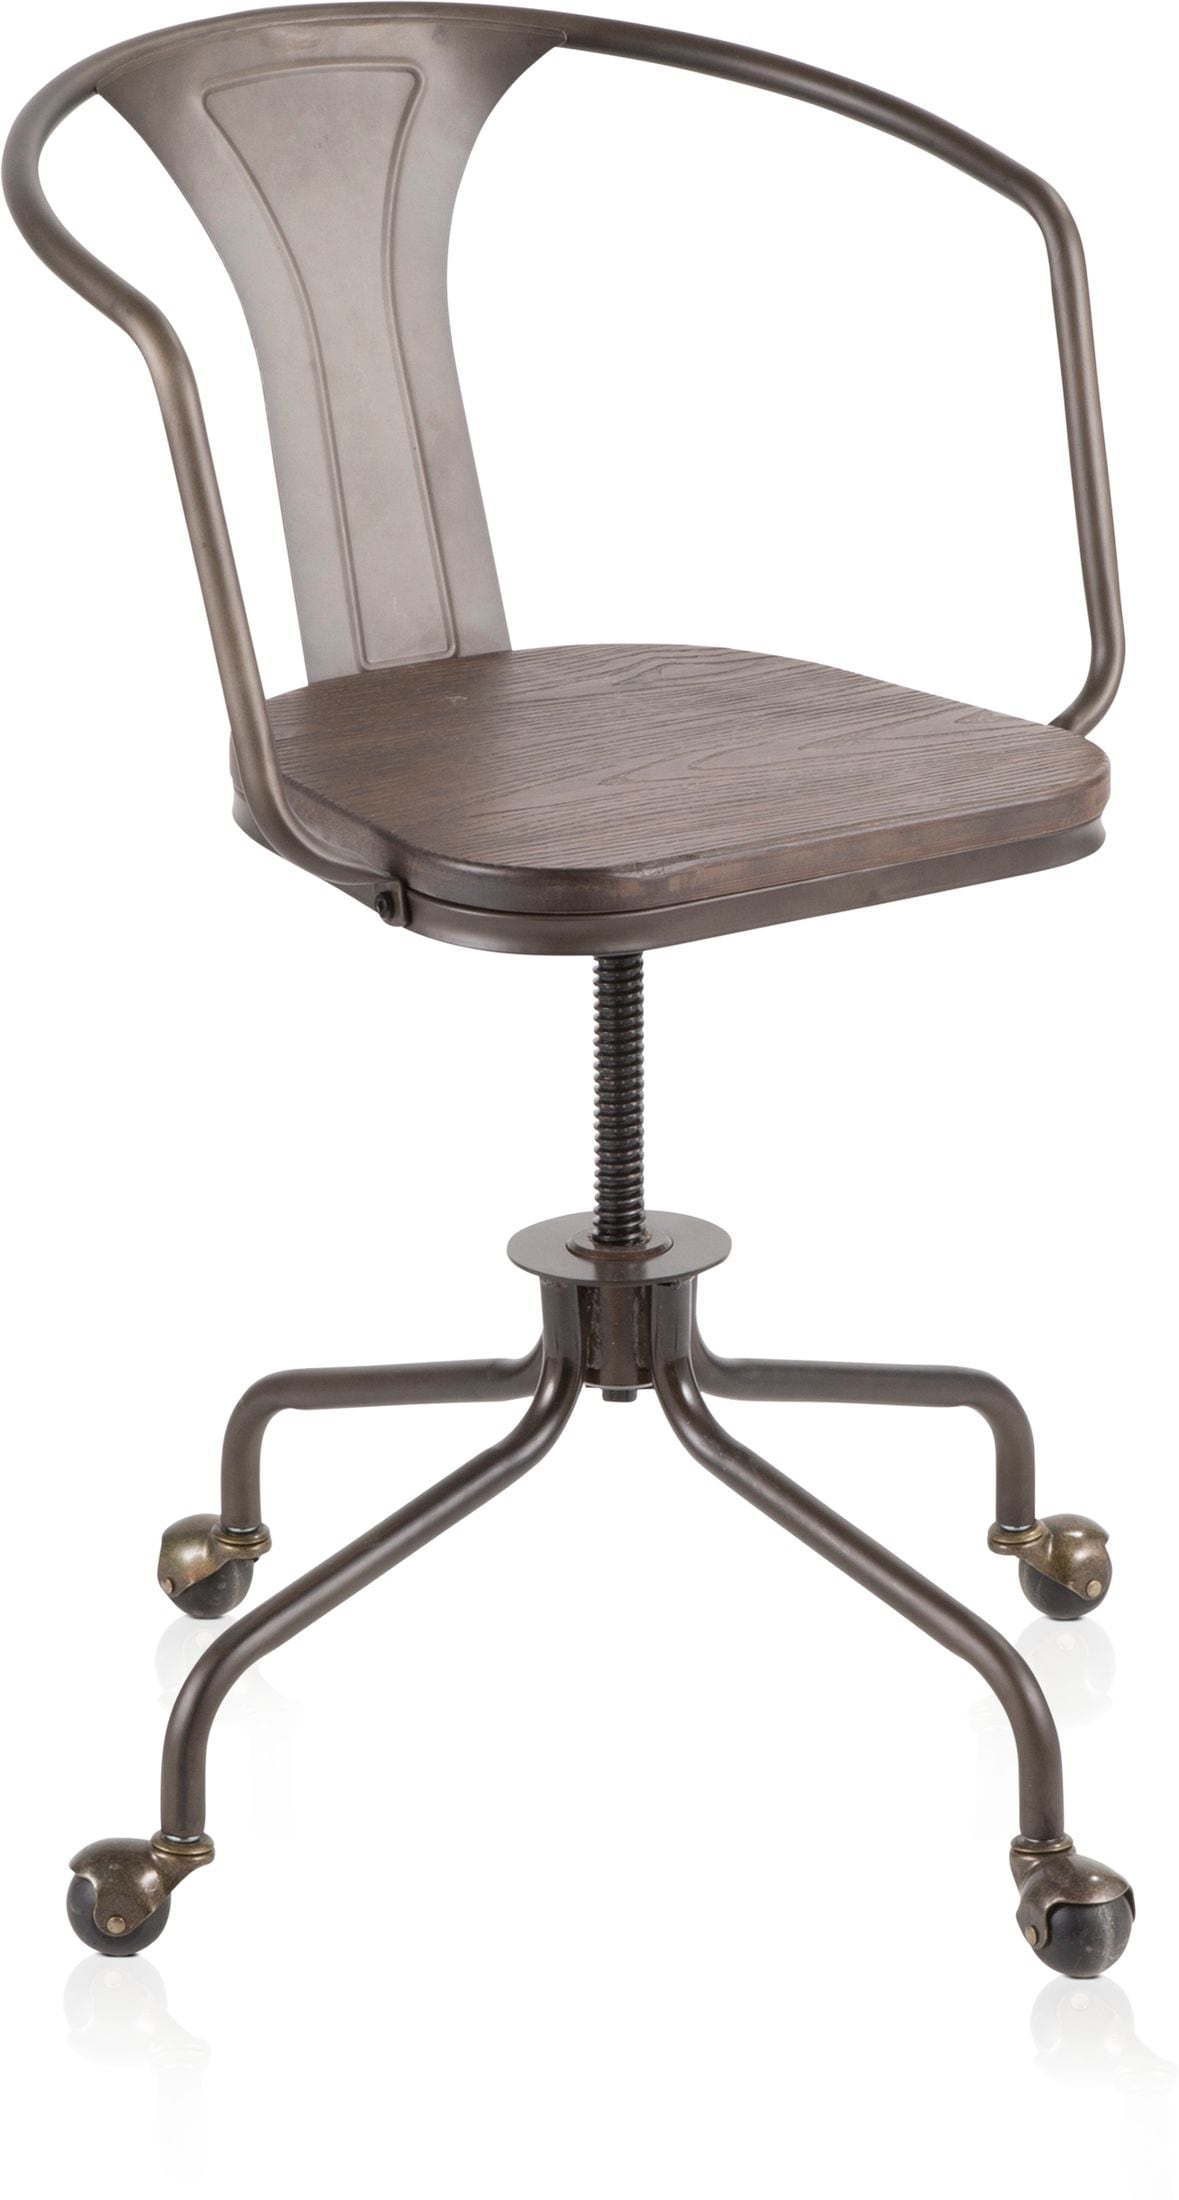 Home Office Furniture - Jordan Office Chair